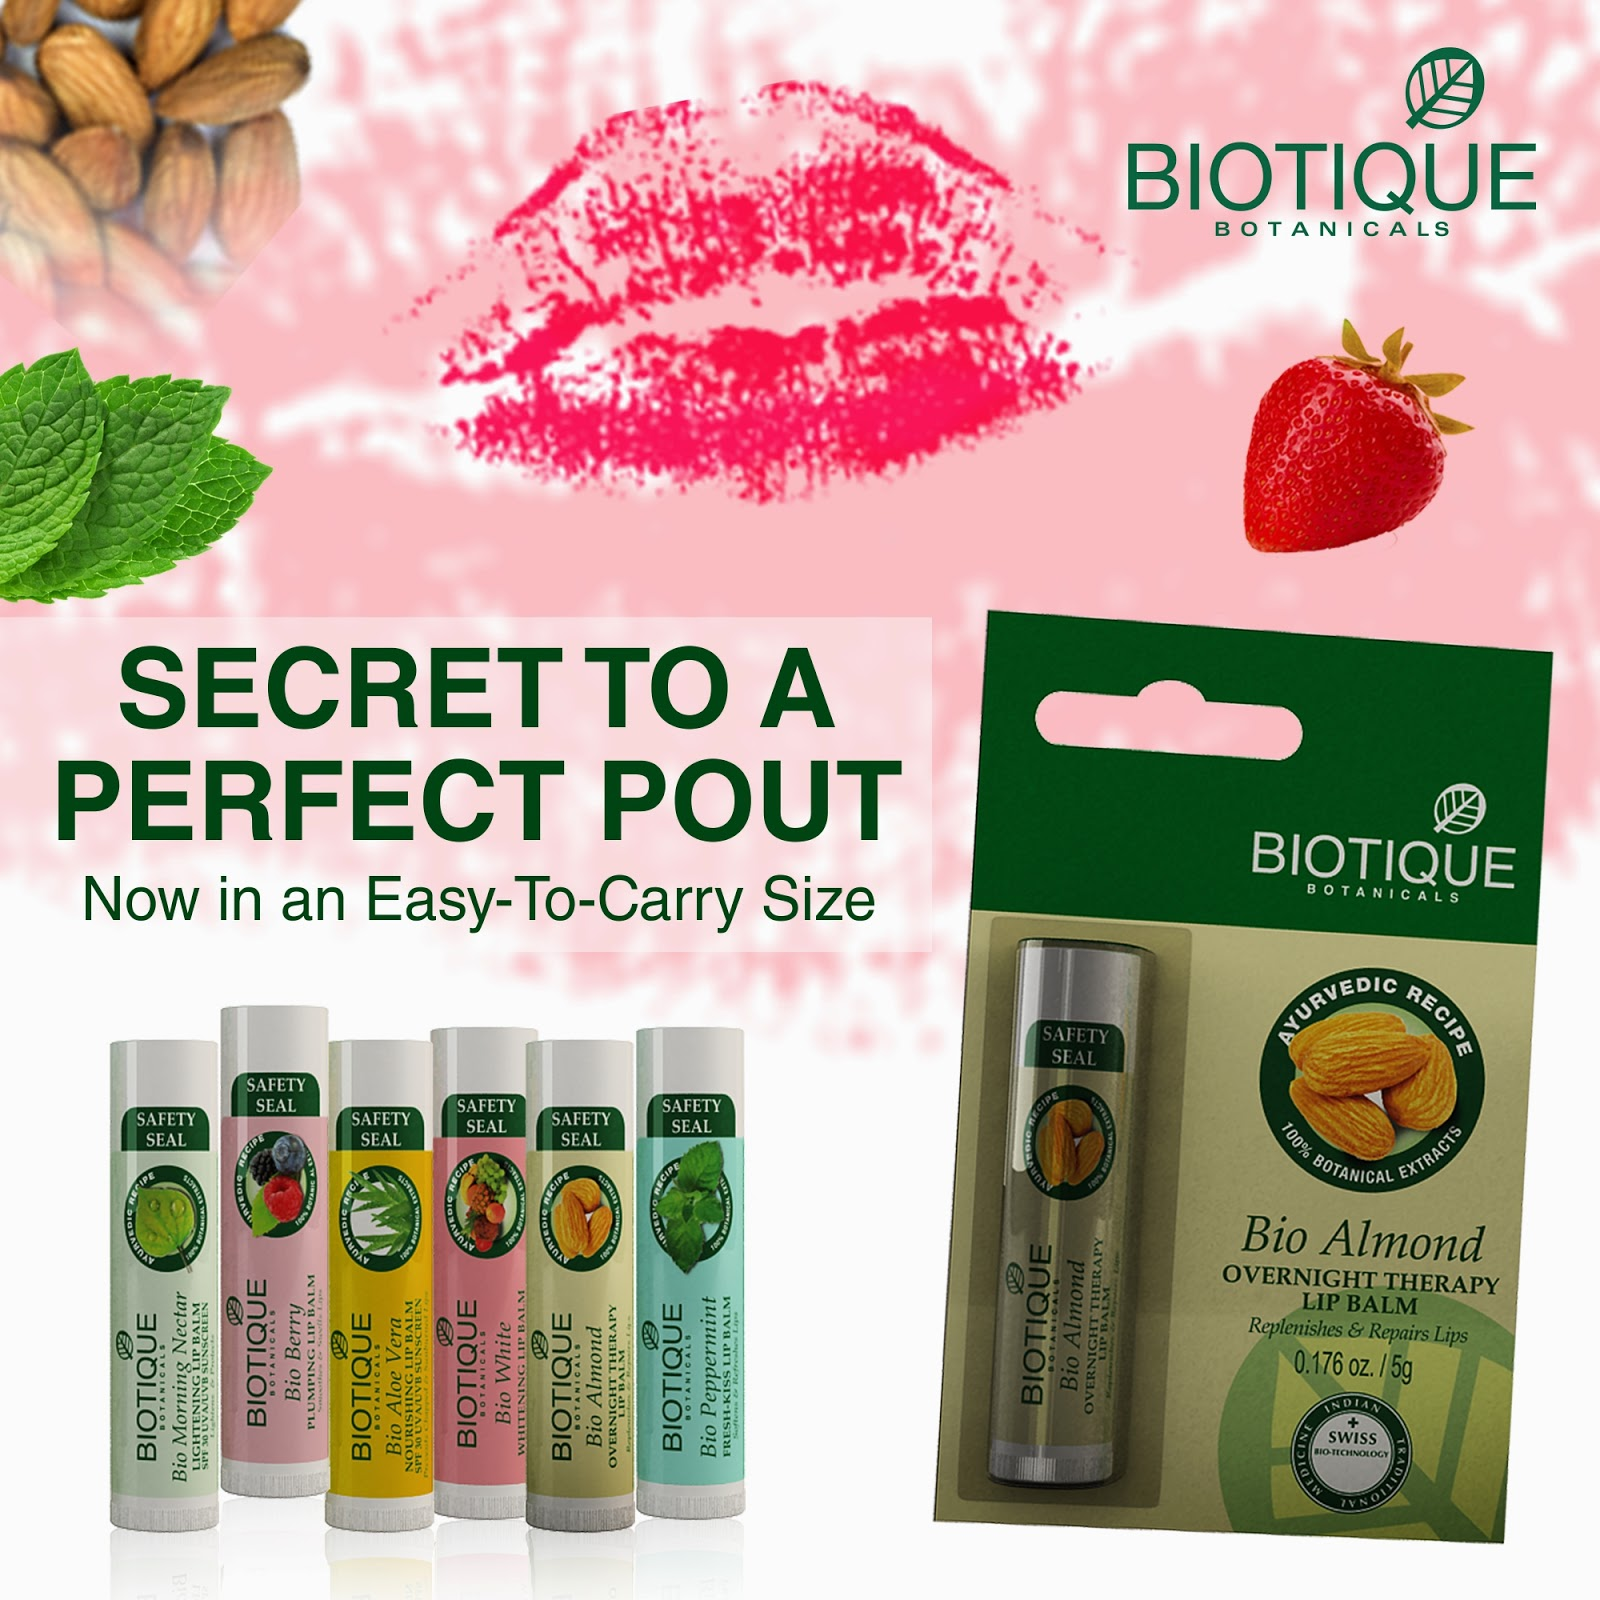 Aftershave & Pre-shave Biotique Advanced Bio Wild Grass Sooting After Shave Gel 120 Ml Cleaning The Oral Cavity.